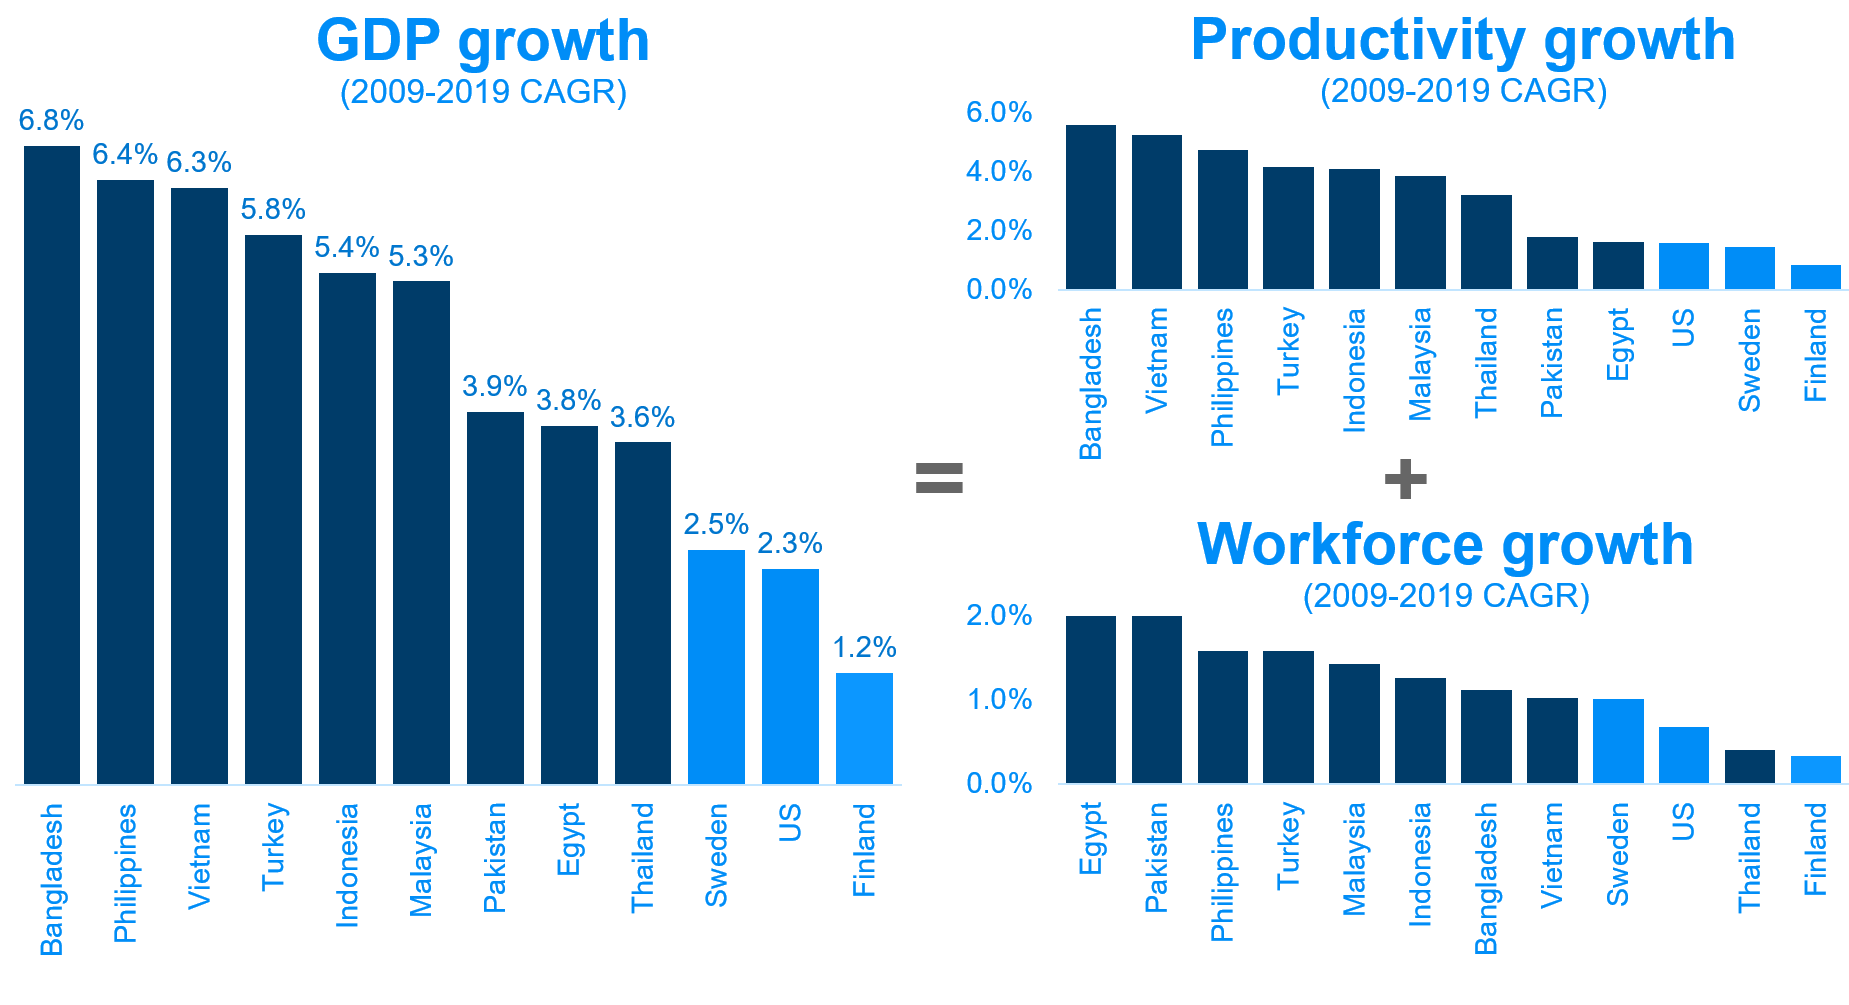 GDP, Productivity and Workforce growth